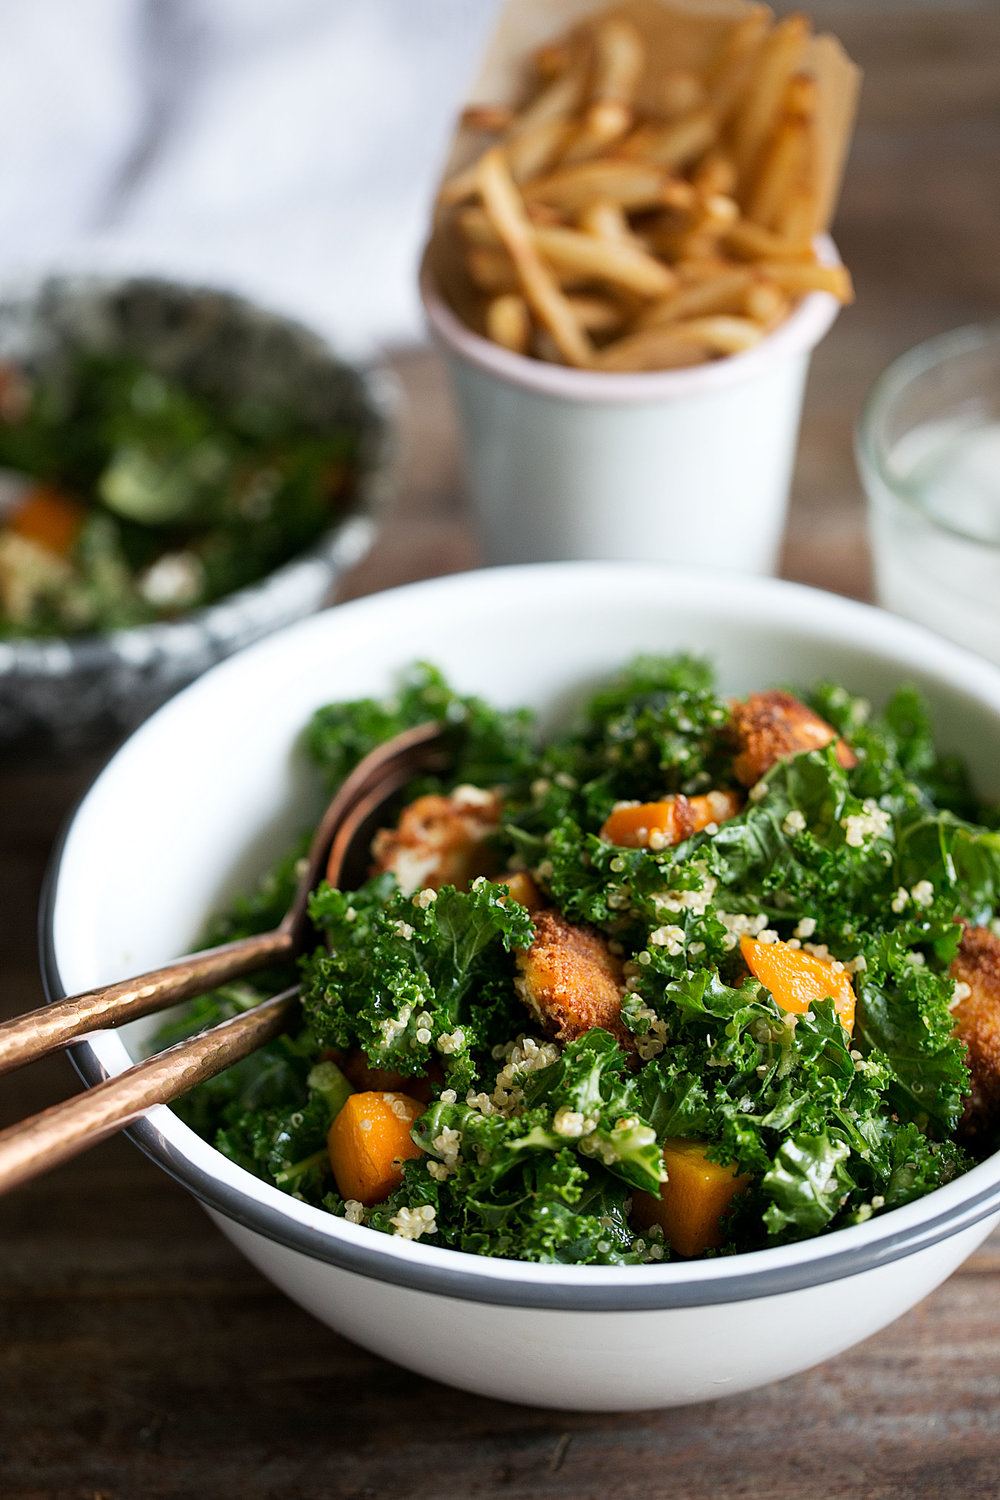 Butternut Squash, Quinoa & Kale Salad with Warm Goat Cheese and Apple Cider Vinaigrette